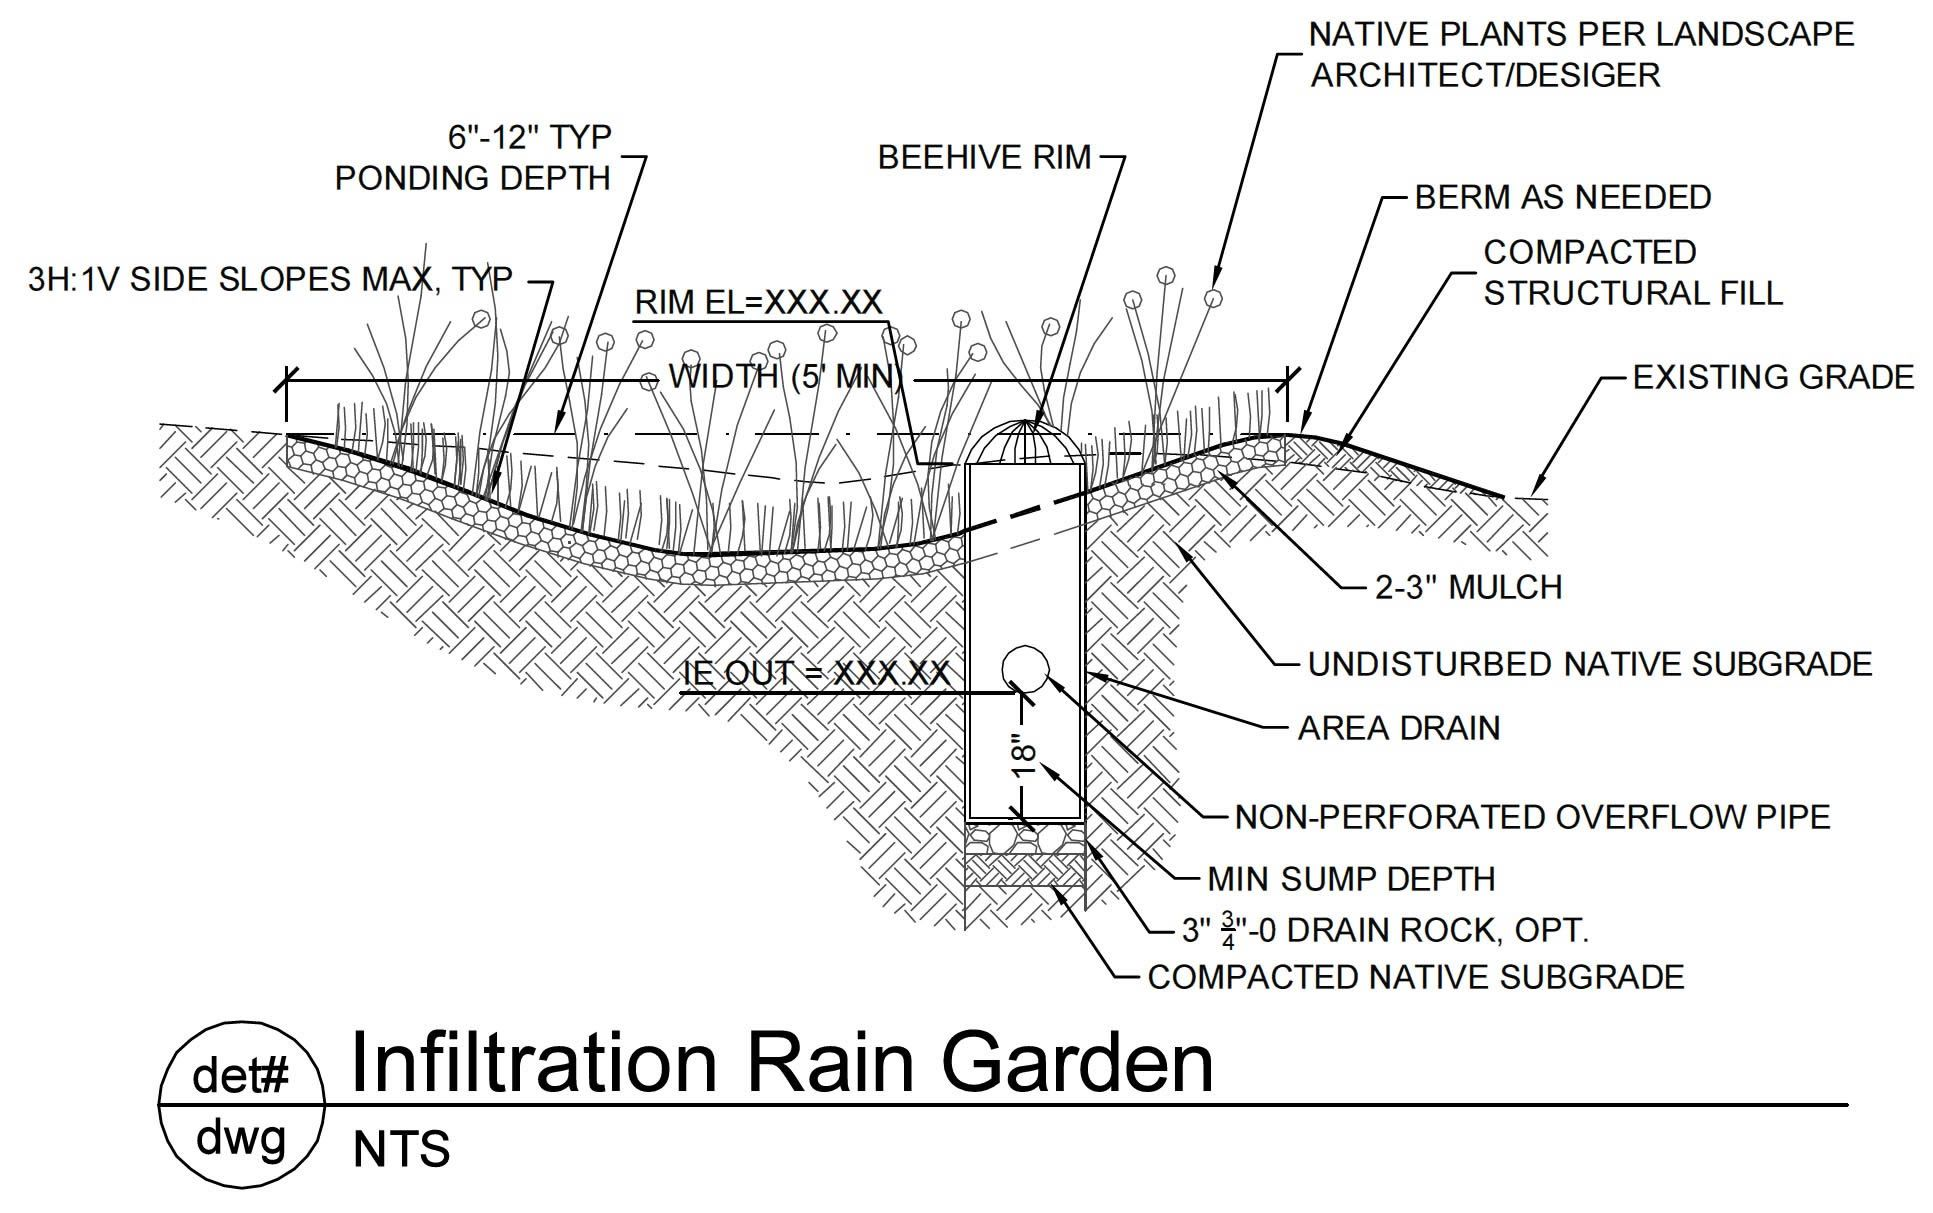 infiltration rain garden schematic by green girl landscapinginfiltration rain garden schematic by green girl